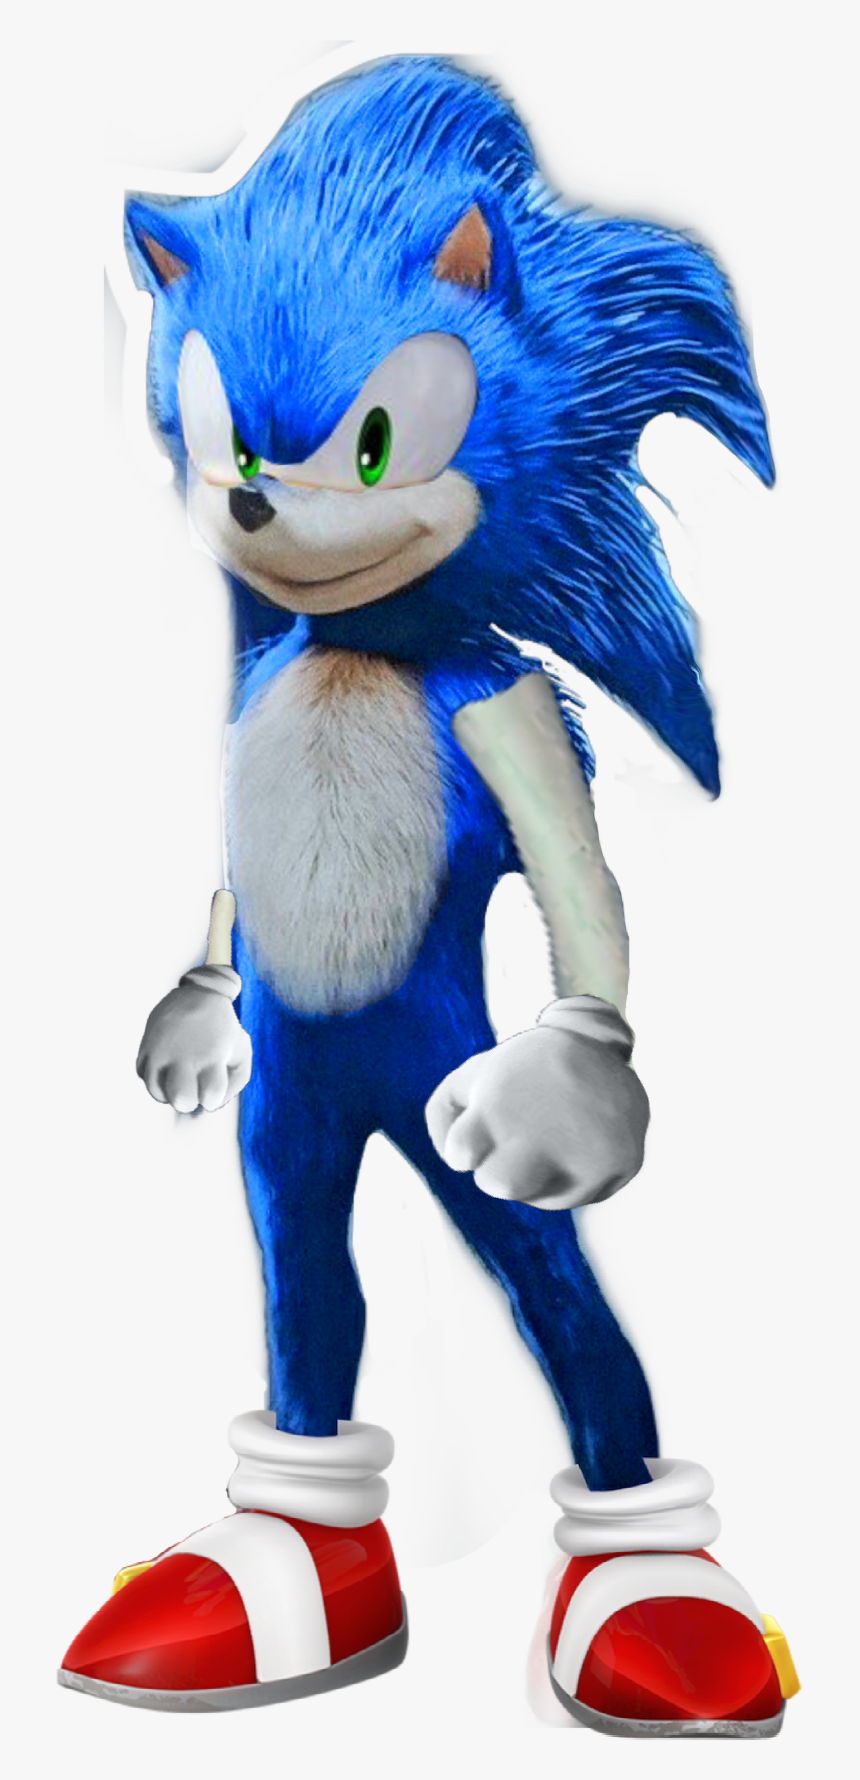 Sonicmovie Sonic Movie Fixed 2020 Remake Freetoedit Sonic Redesign Fan Made Hd Png Download Kindpng